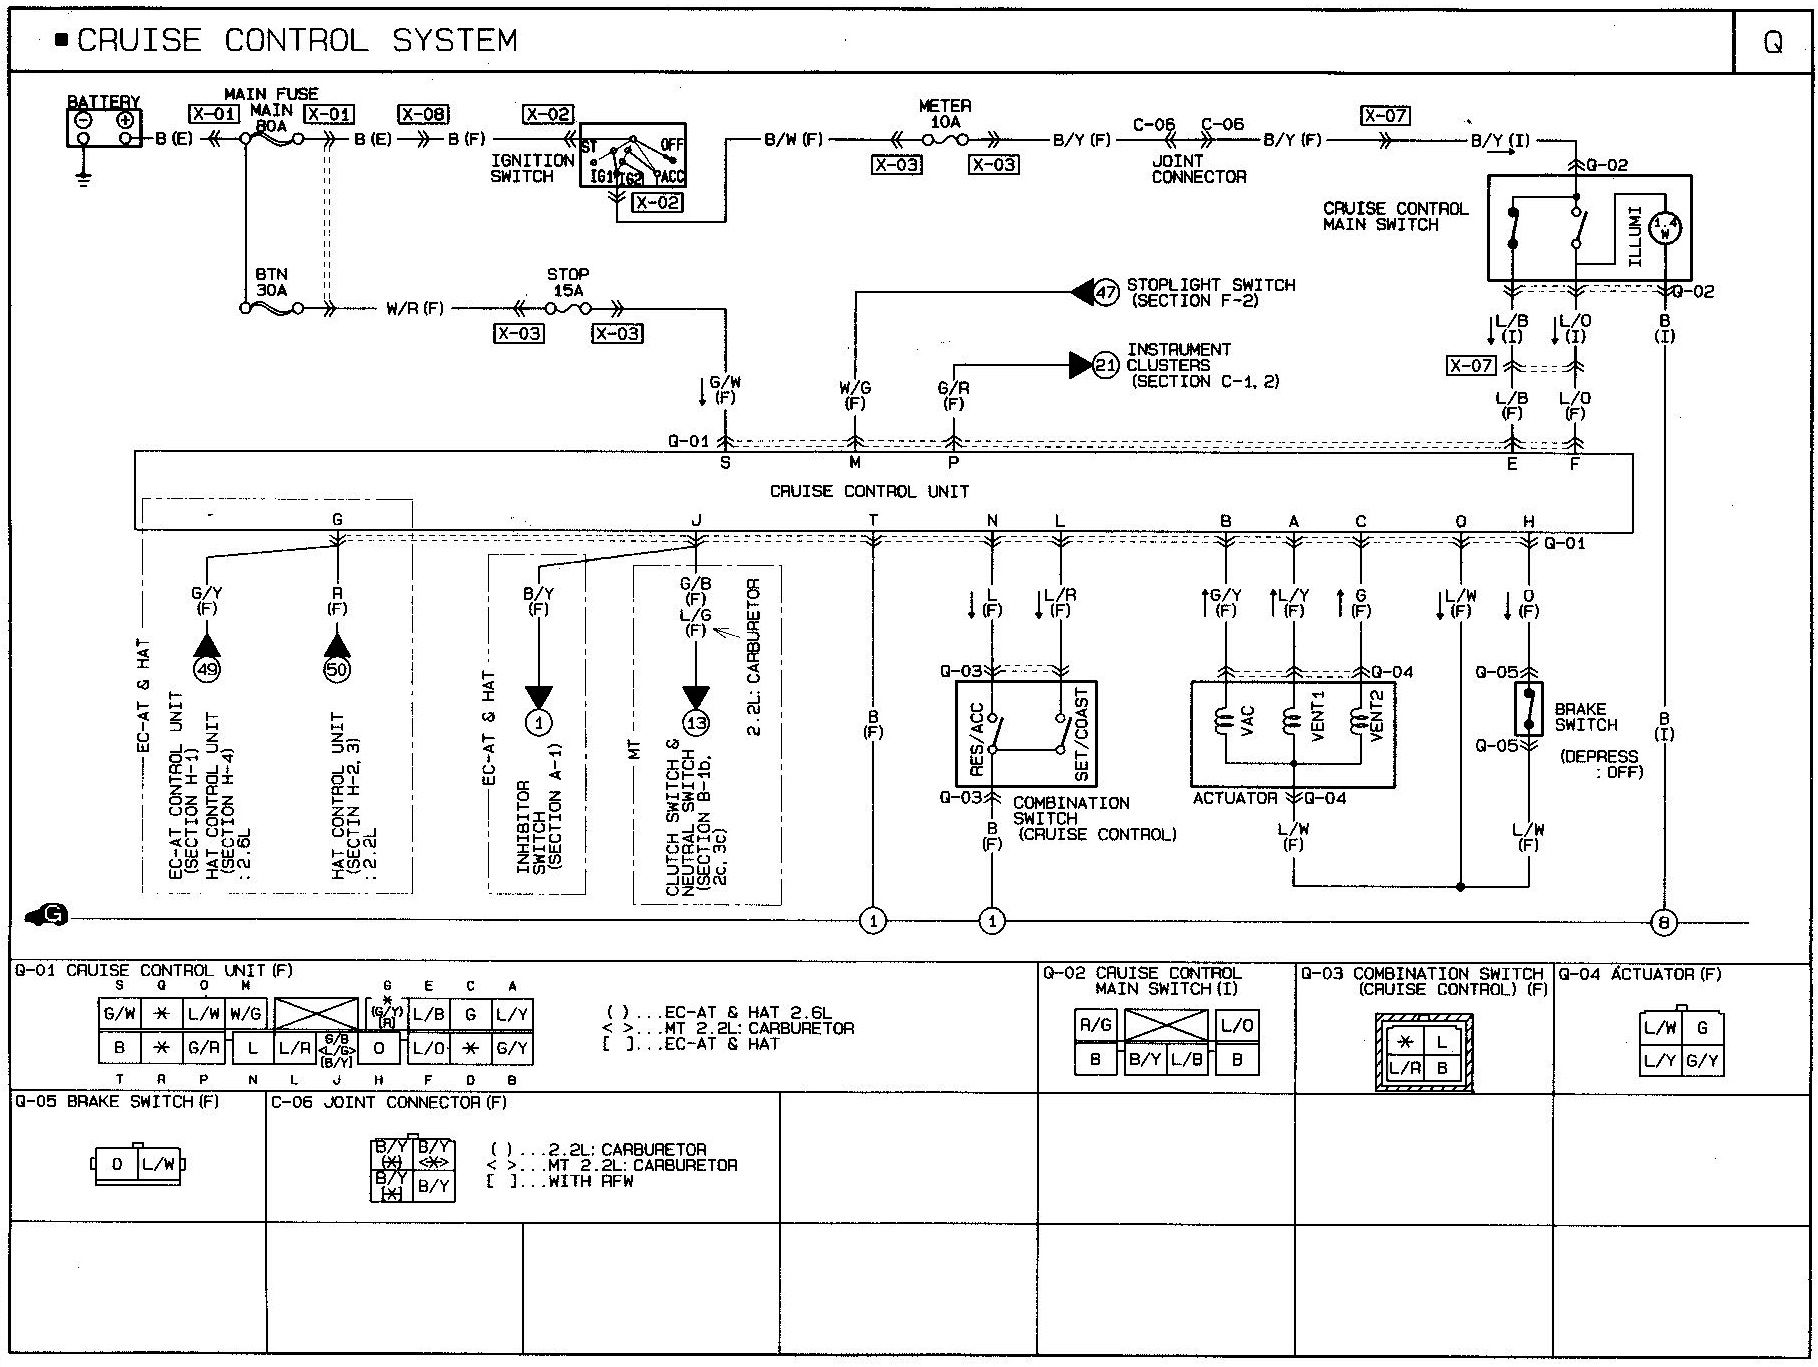 mazda b2600 wiring diagram - wiring diagram for sony stereo system -  1982dodge.ati-loro.jeanjaures37.fr  wiring diagram resource